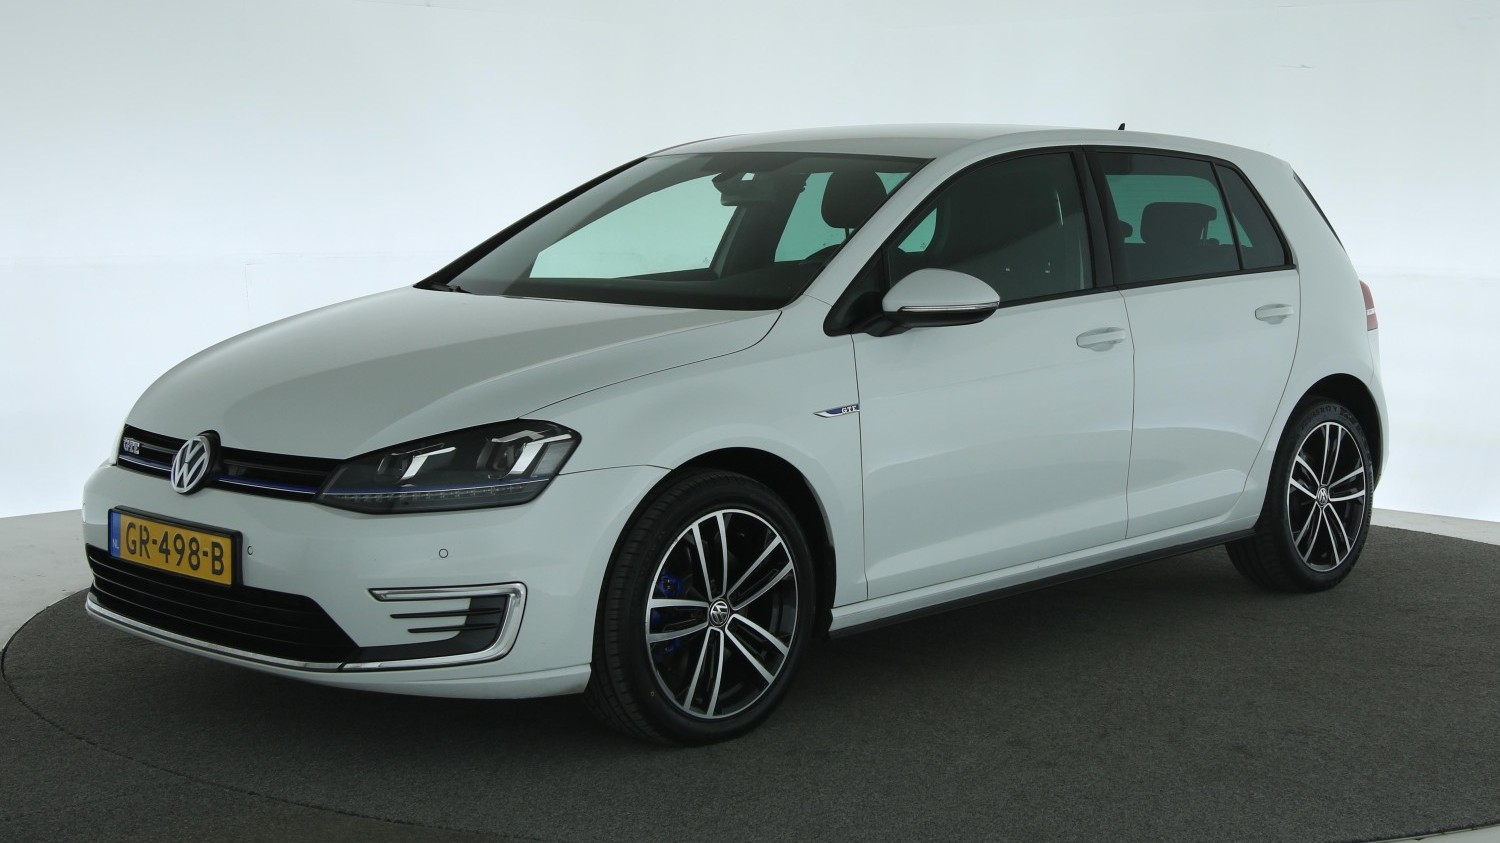 Volkswagen Golf Hatchback 2015 GR-498-B 1